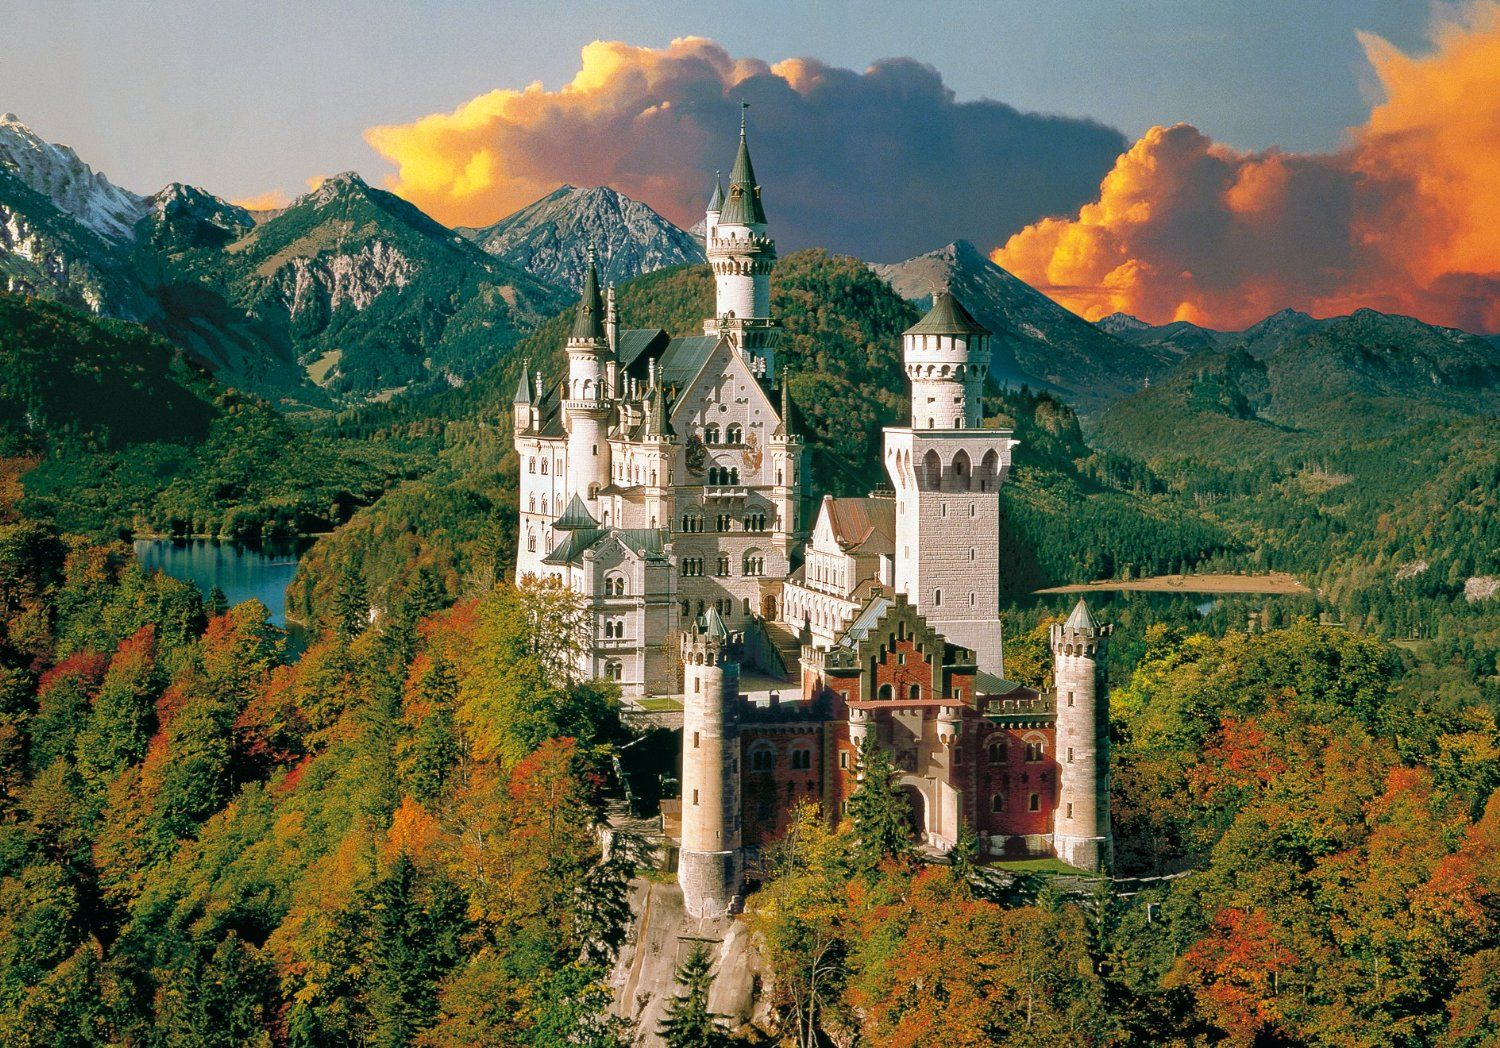 Neuschwanstein, the castle after which fairy tales are made!  What a Bavarian wonder.